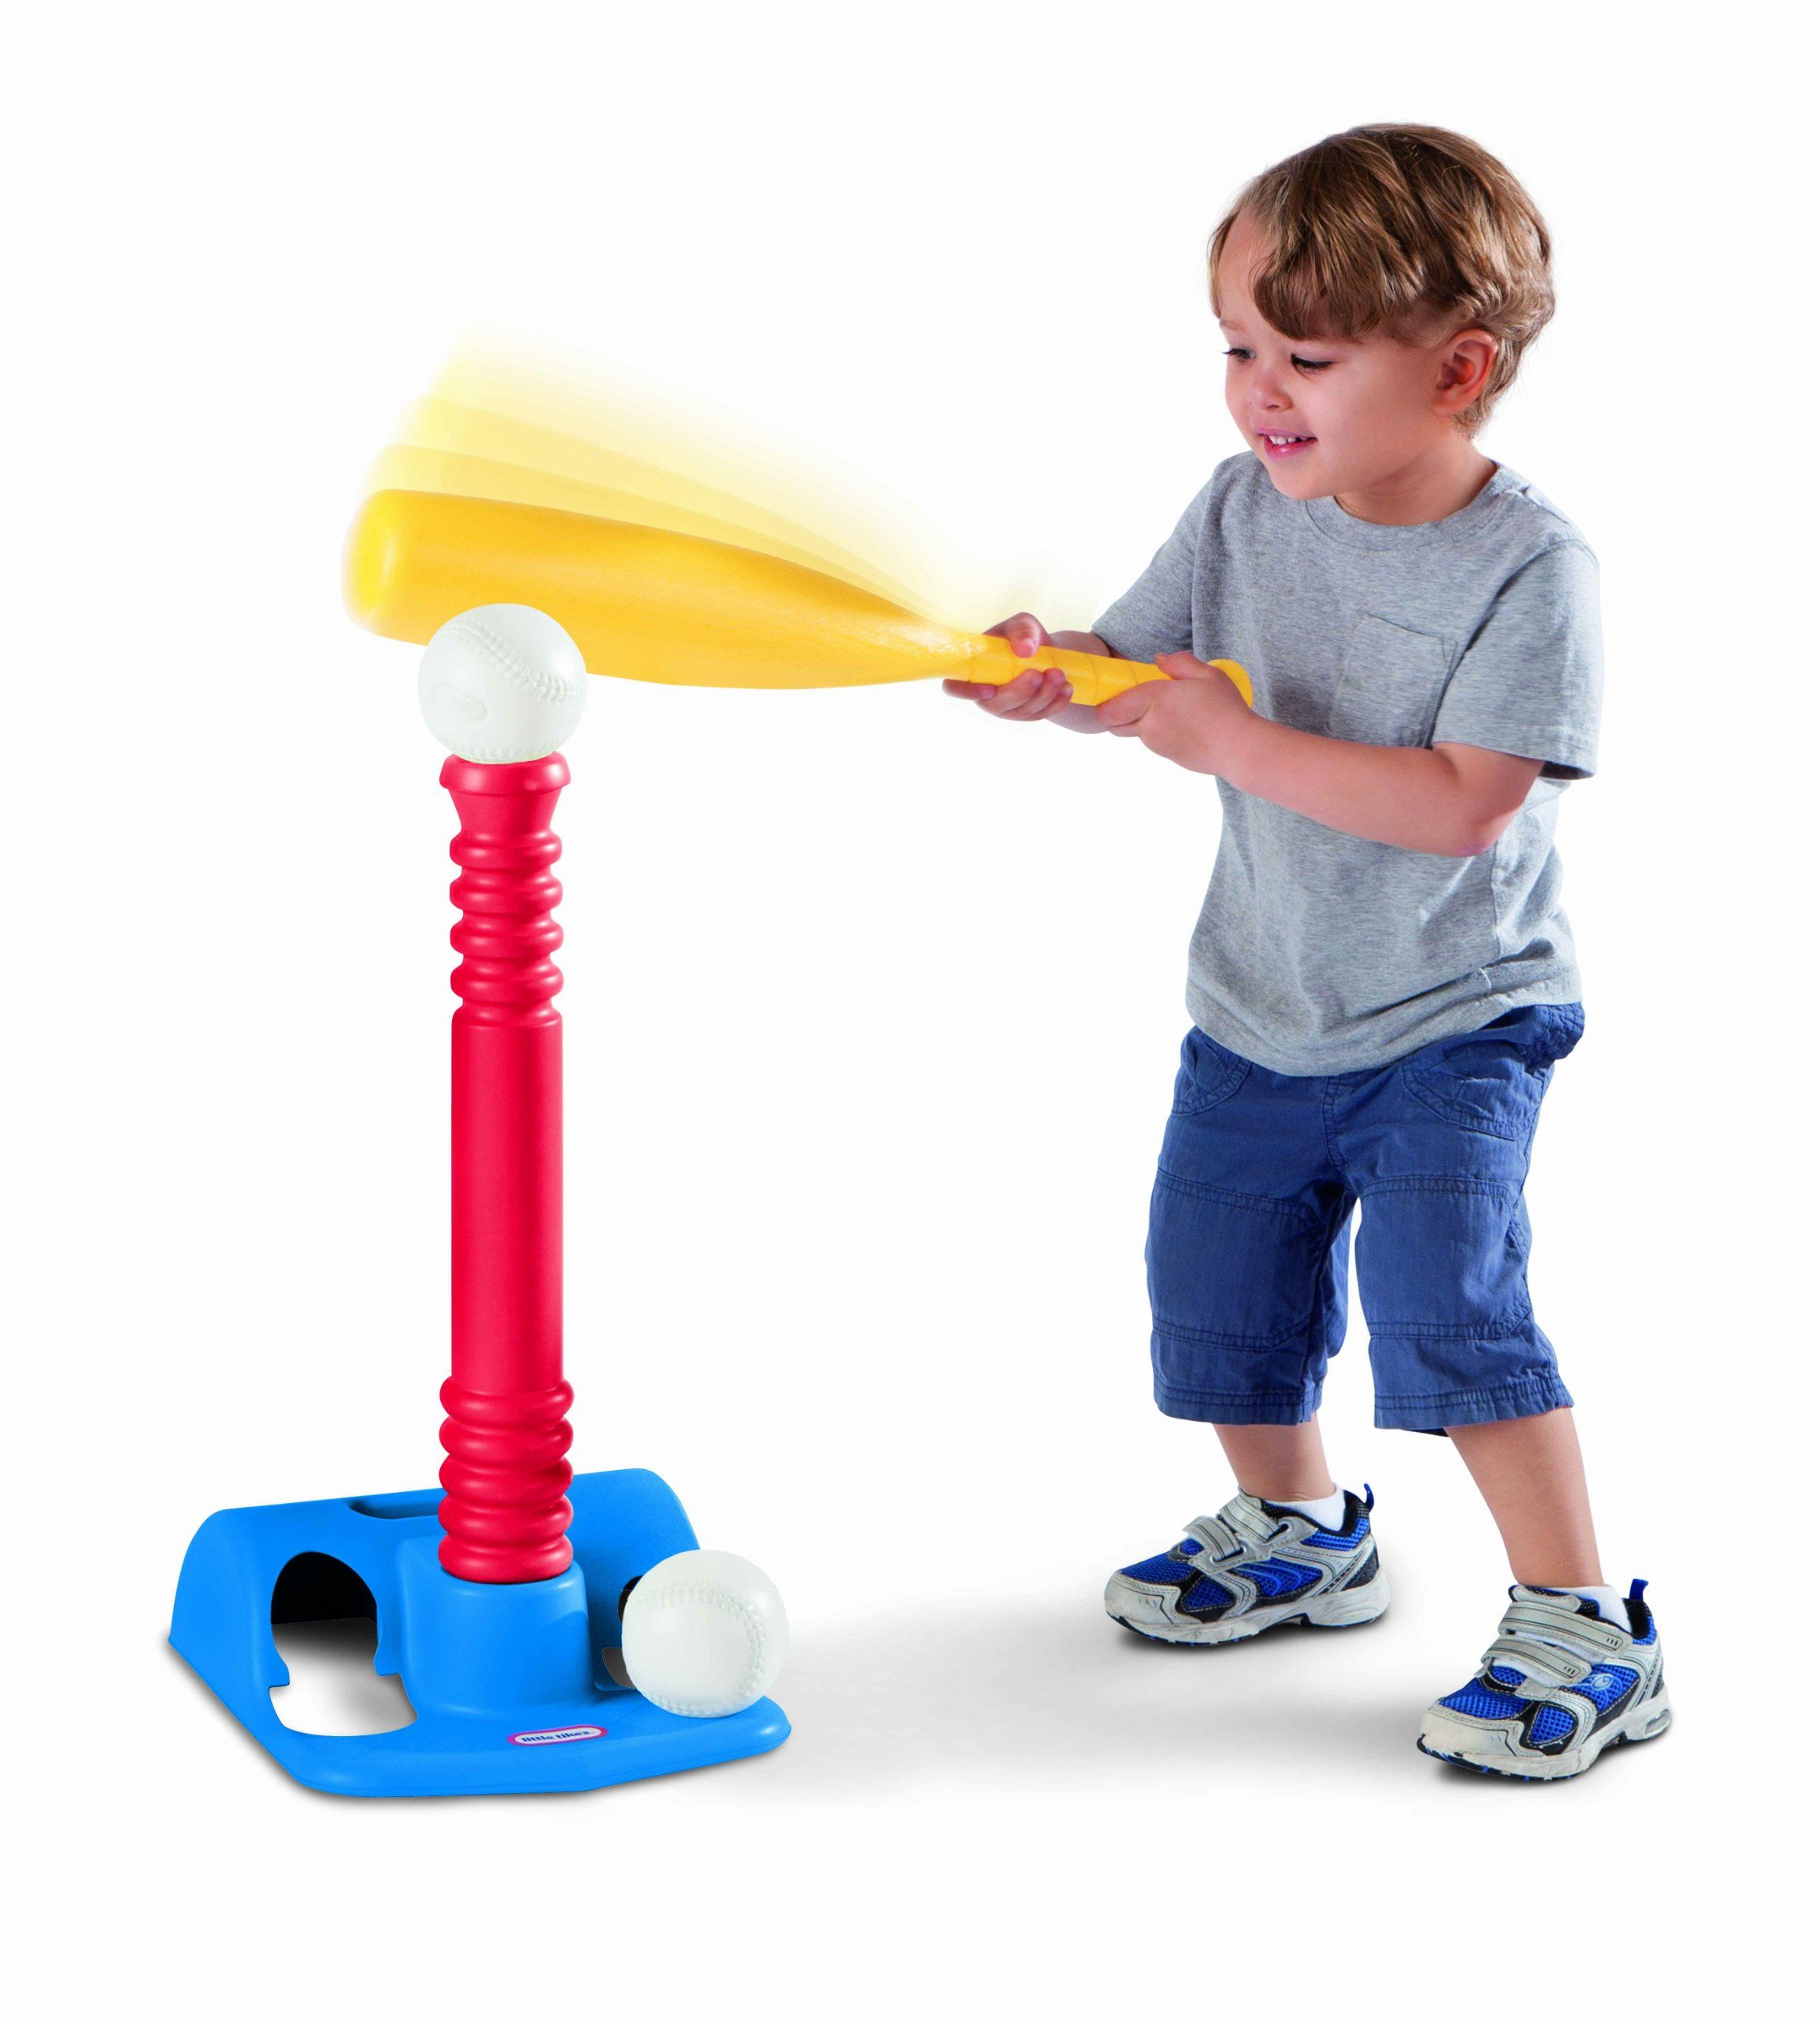 Christmas Gifts For 18 Year Old Boy: Amazon.com: Little Tikes TotSports T-Ball Set: Toys